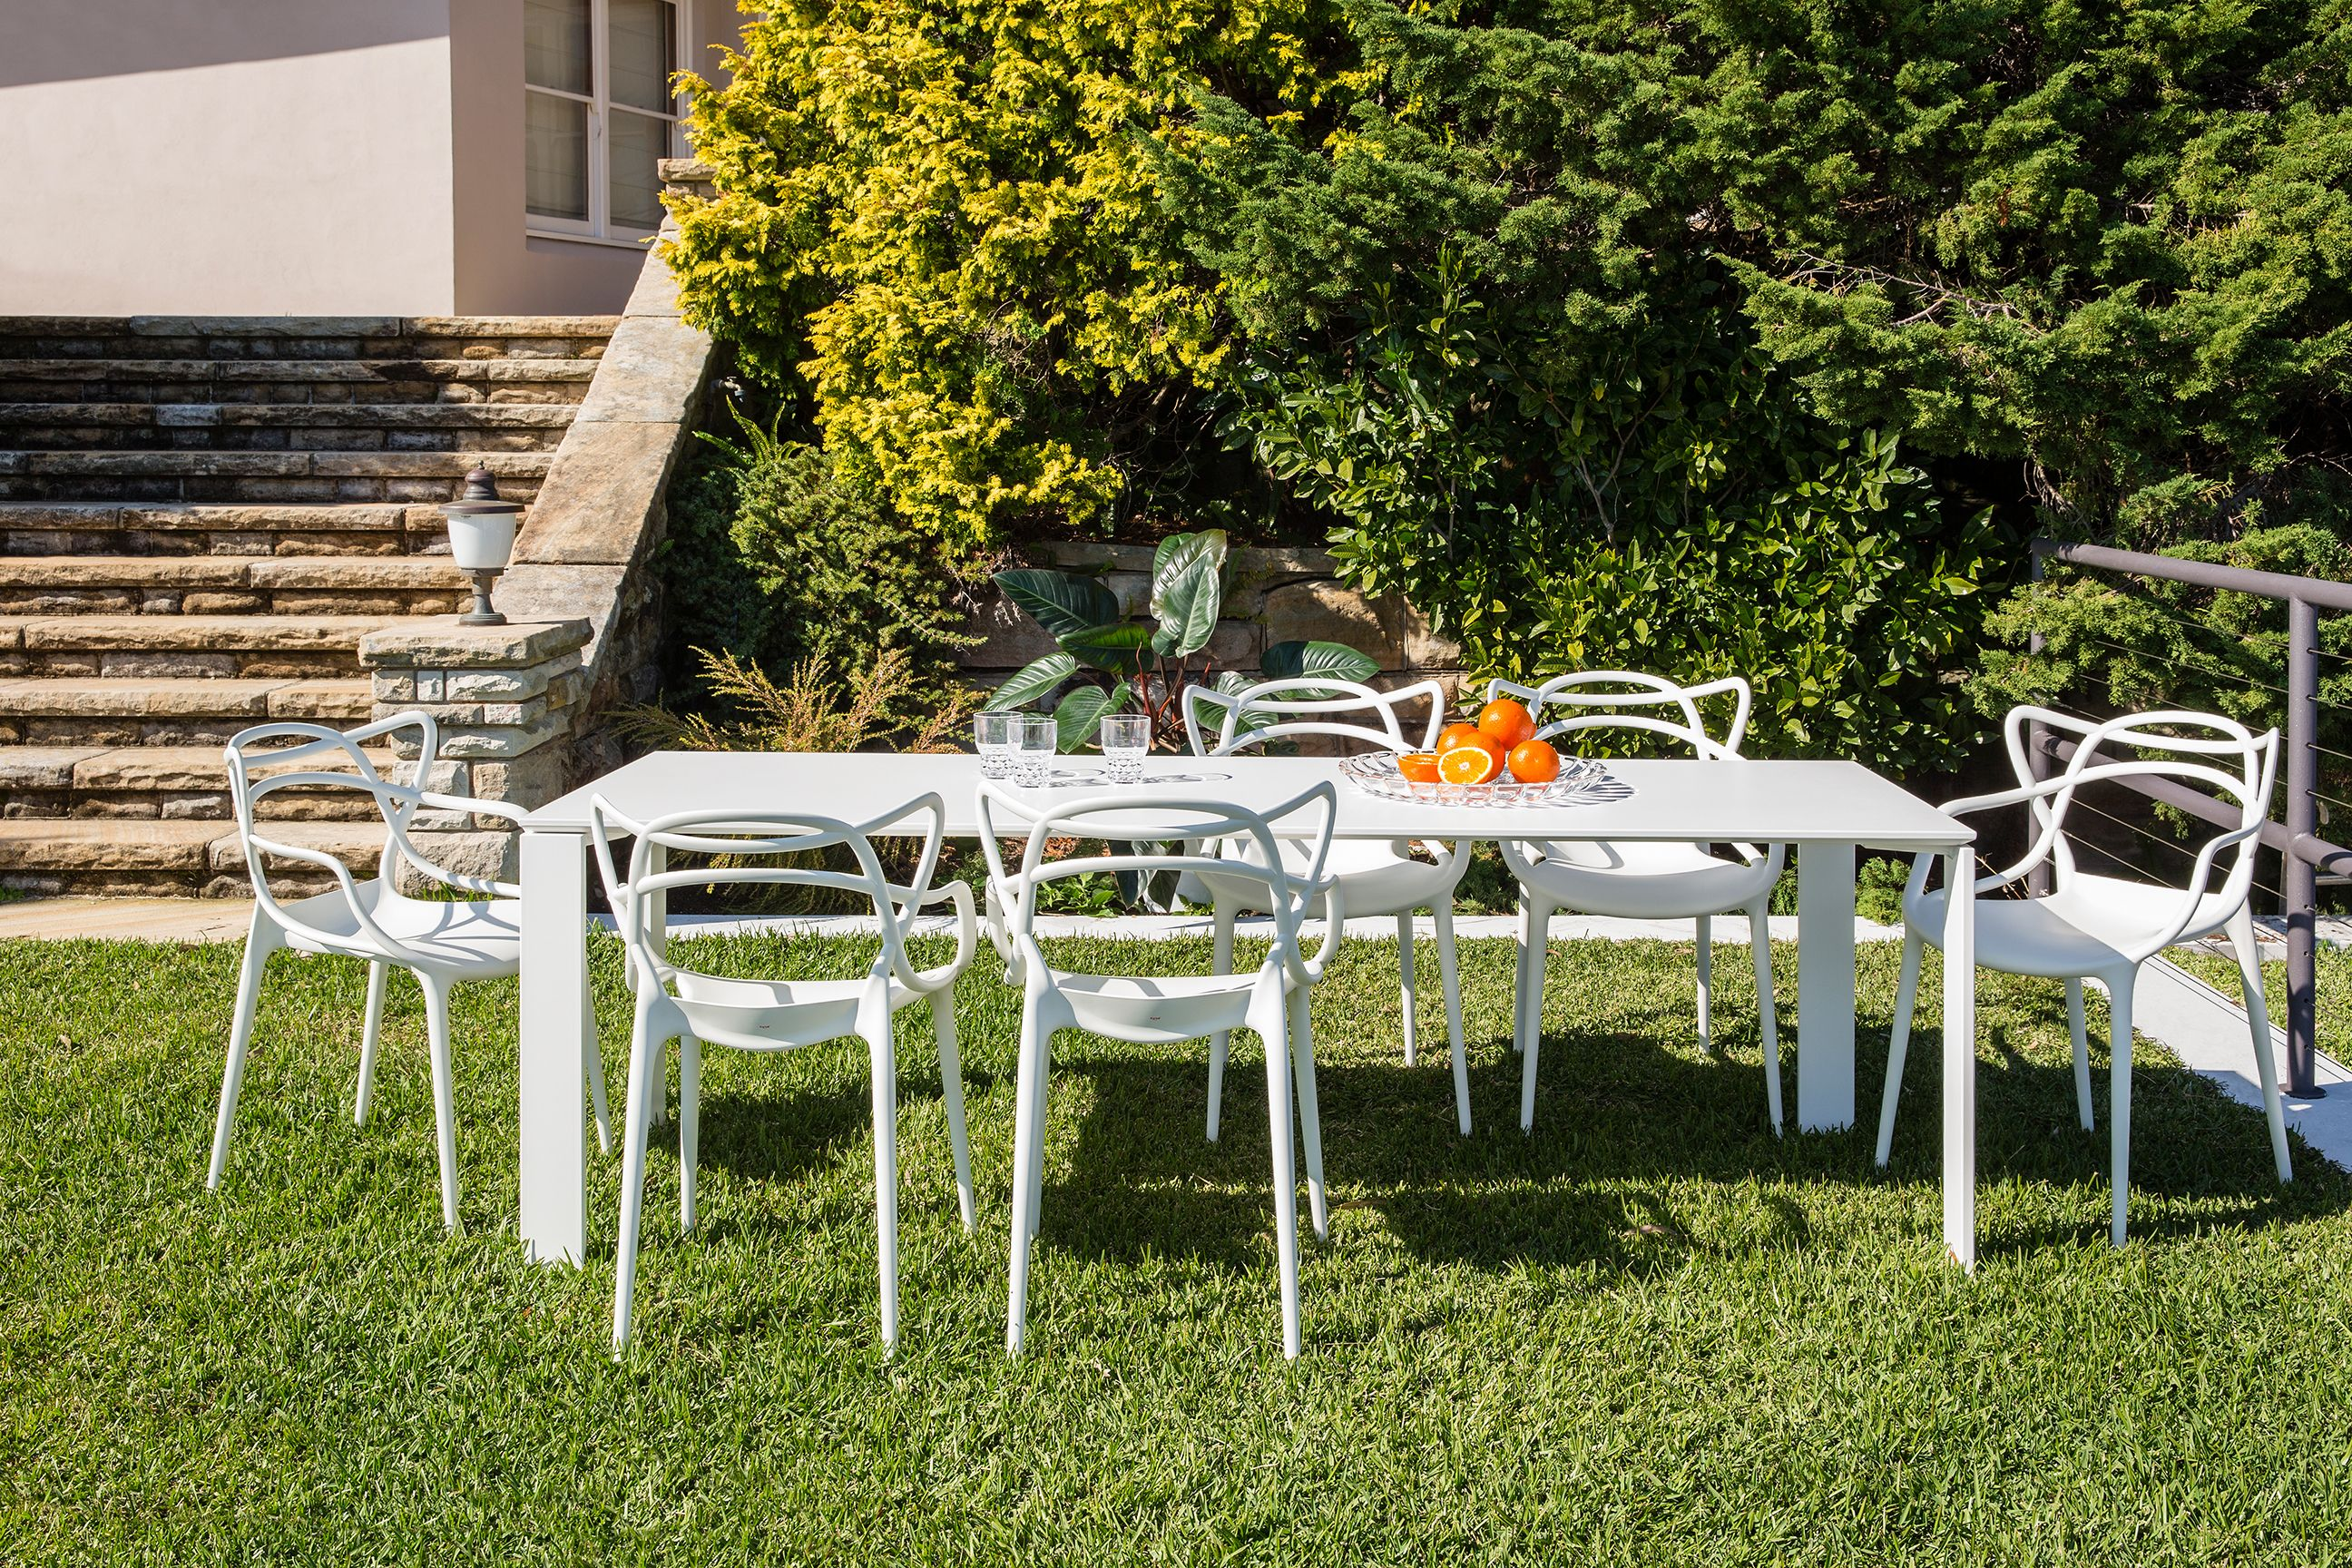 Kartell Masters Dining Chairs Kartell Four Outdoor Table Kartell Jellies Tableware Collection Outdoor Dining Chairs Outdoor Furniture Outdoor